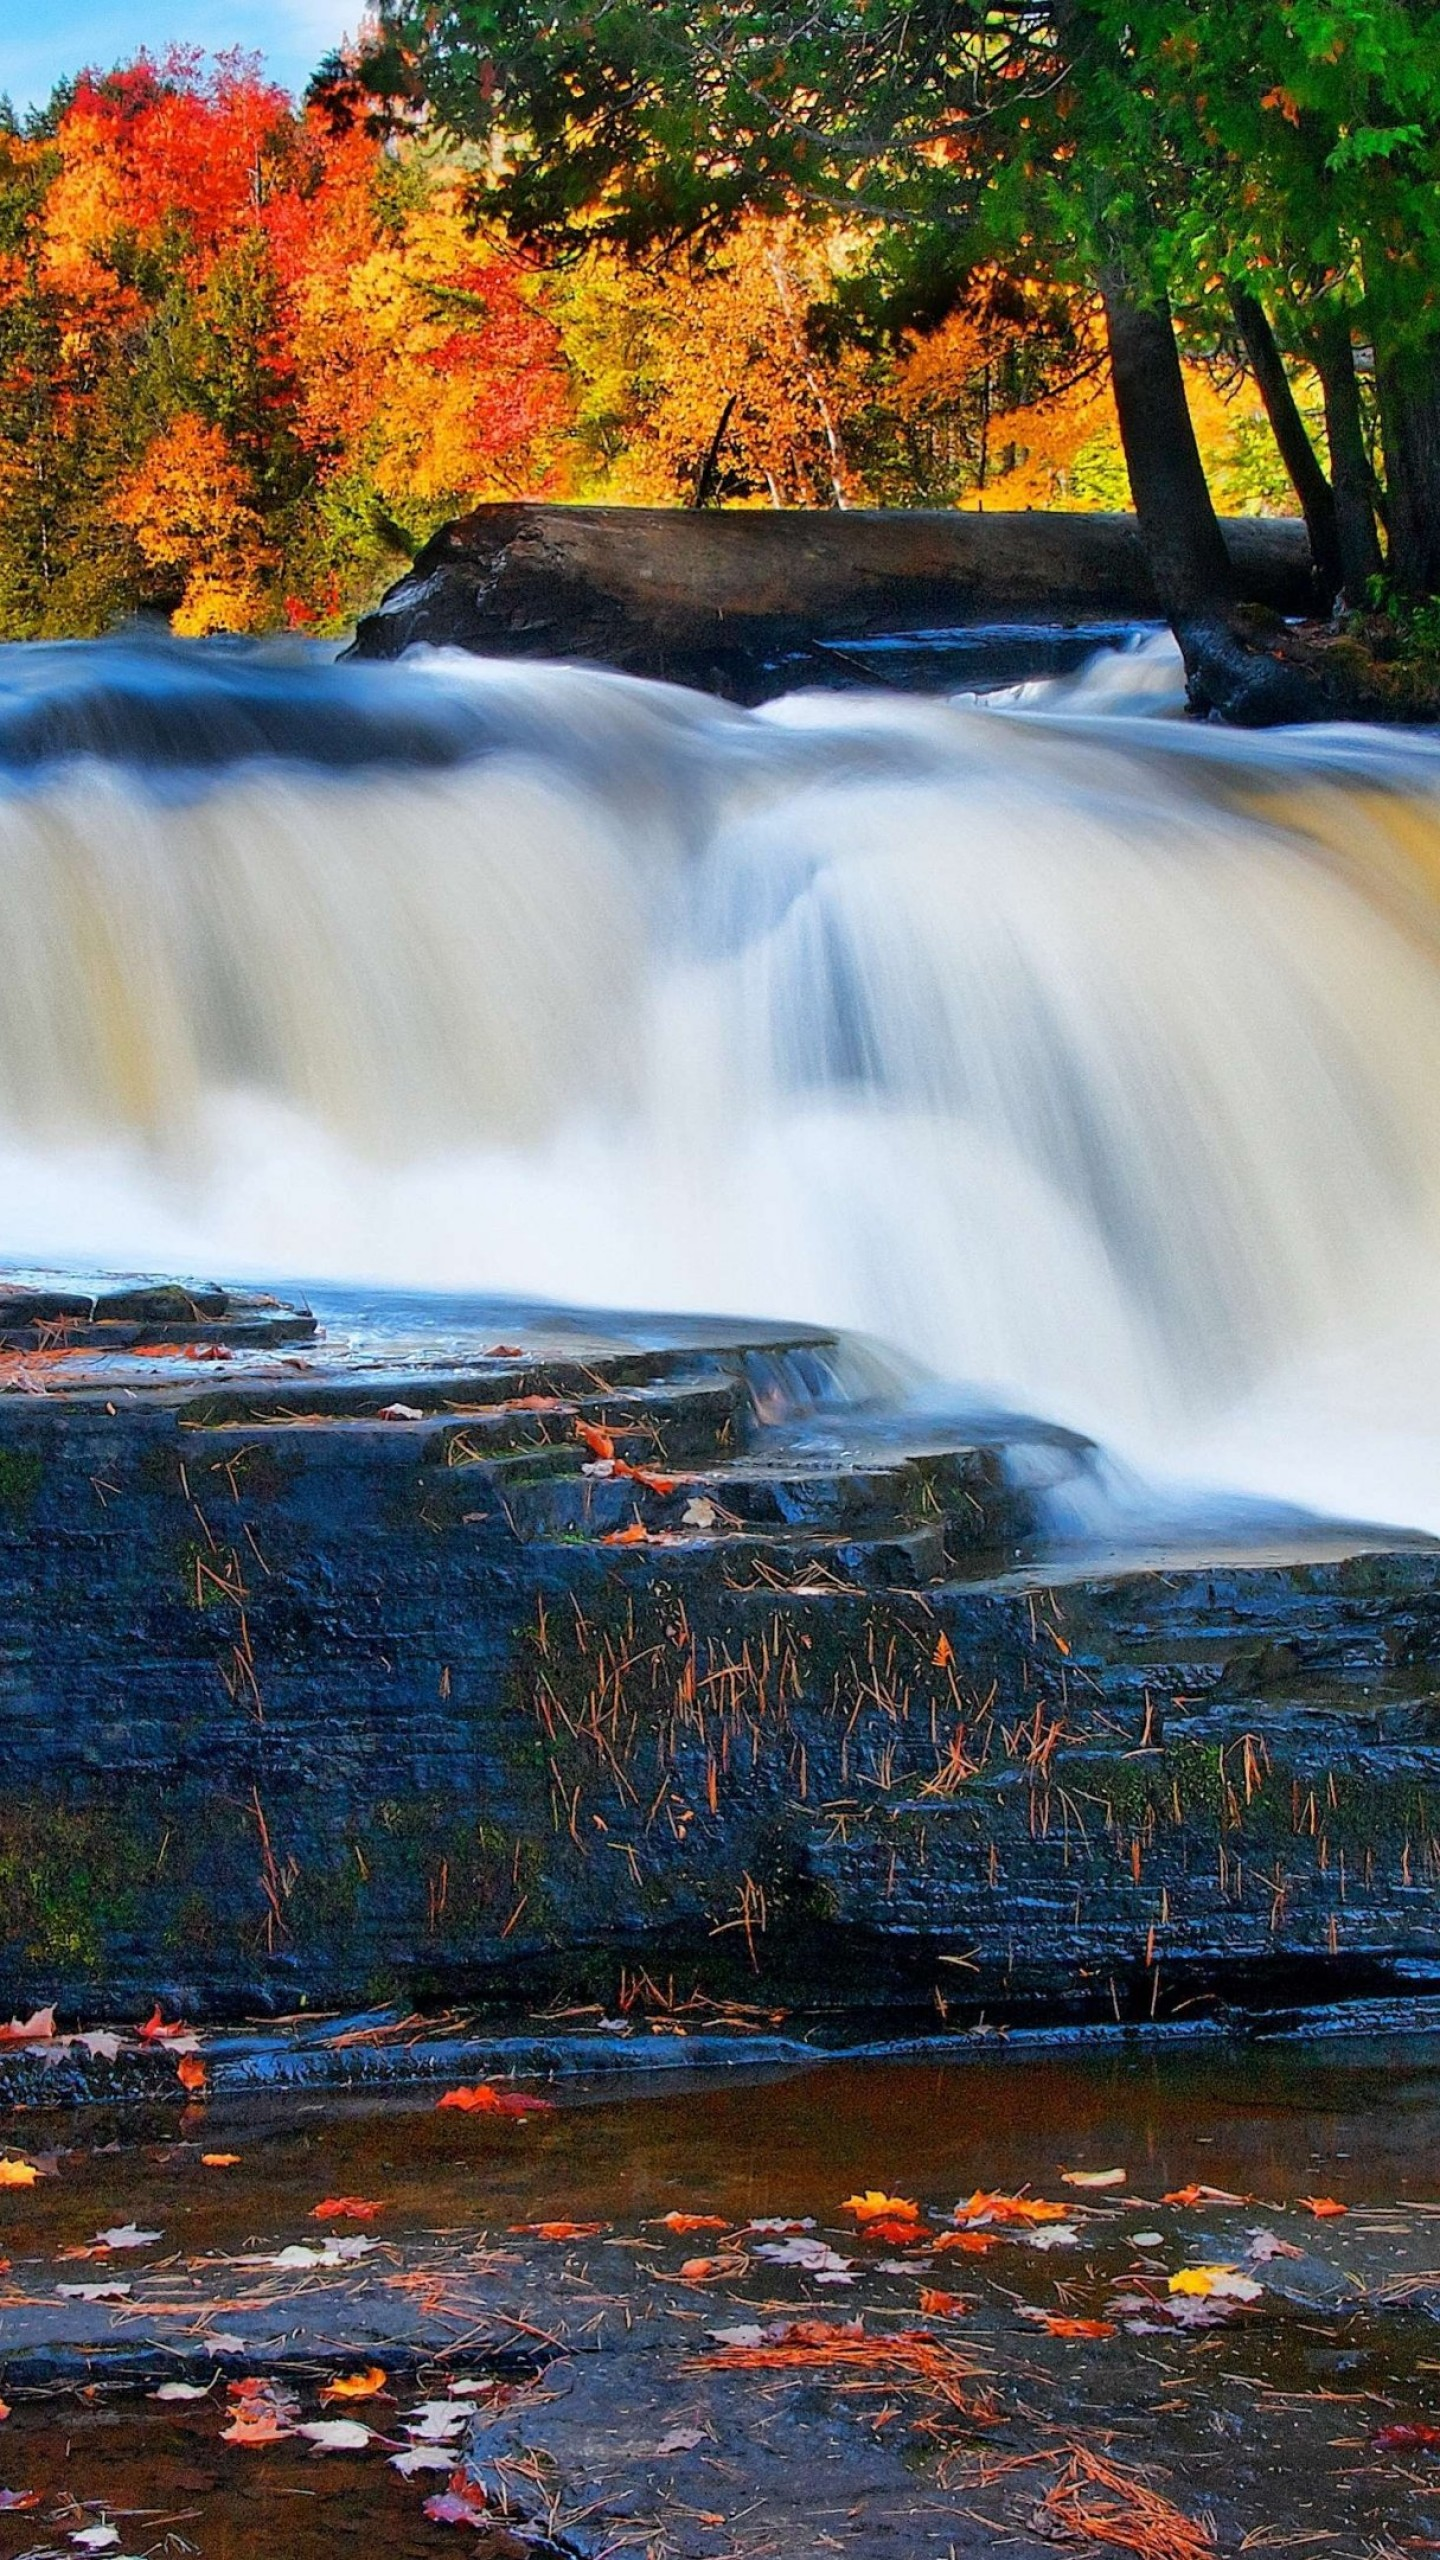 Fall Wallpaper Lake Wallpaper Forest 5k 4k Wallpaper River Waterfall